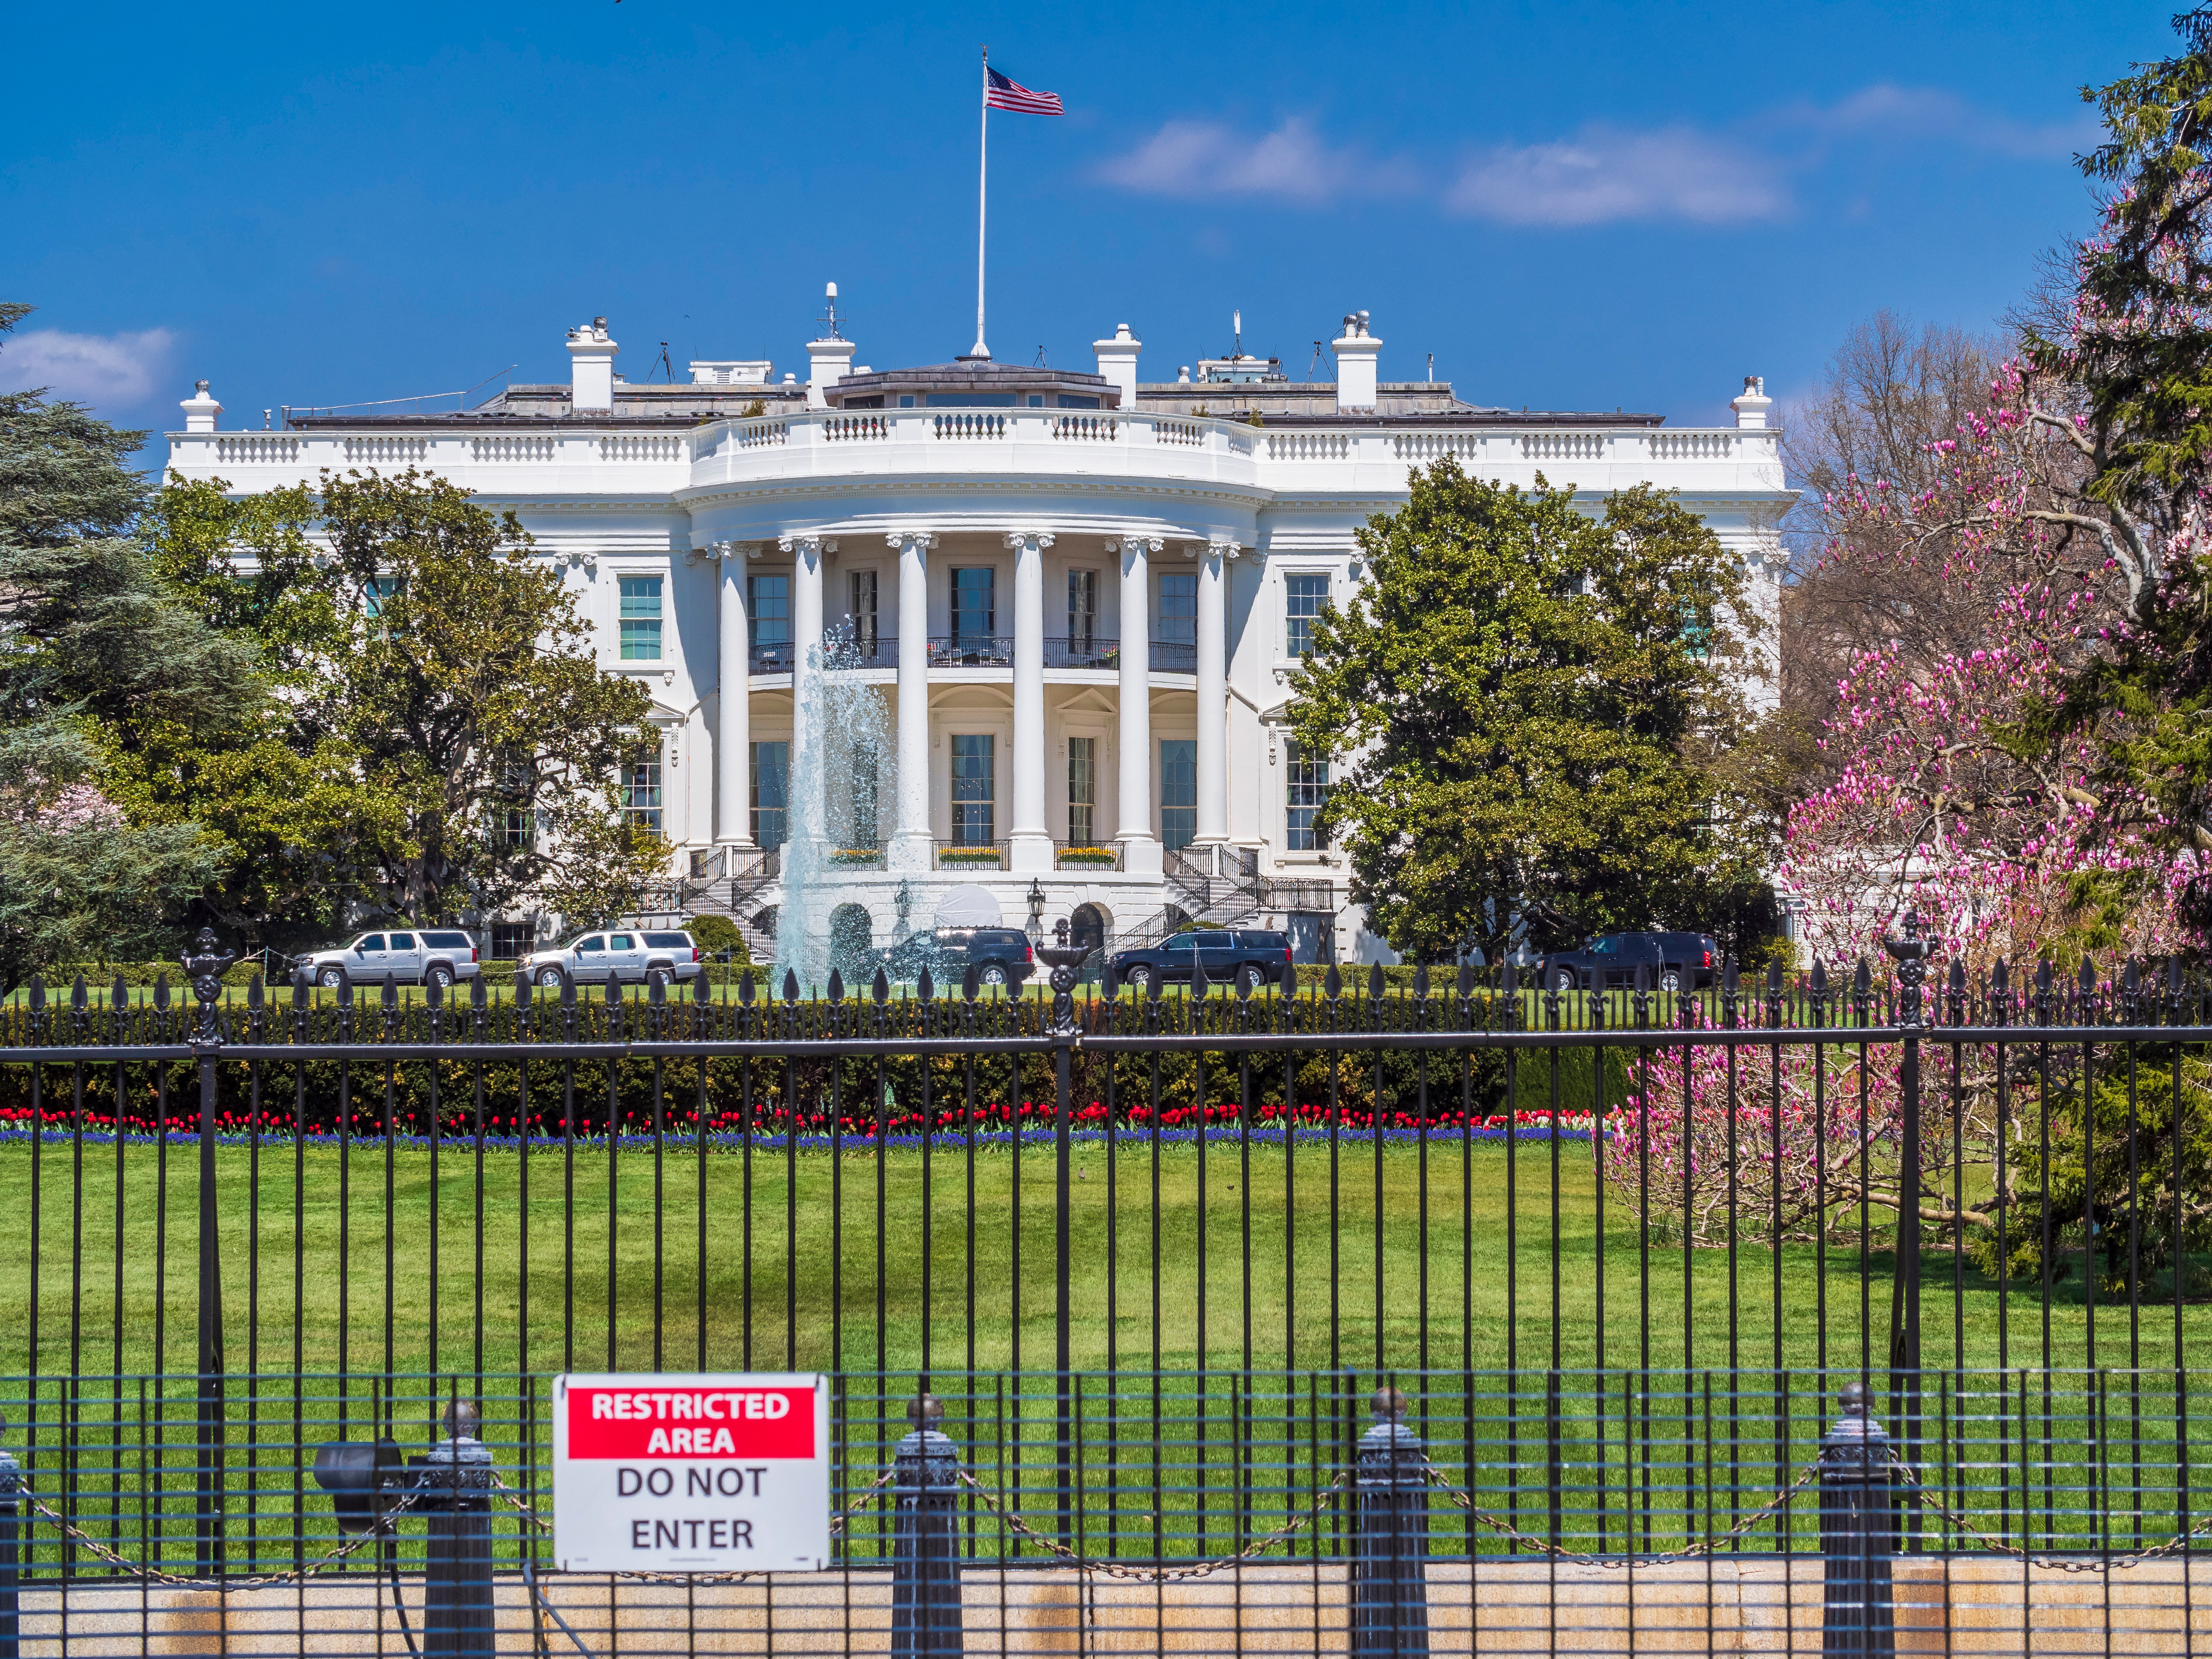 San Francisco Homes Neighborhoods Architecture And Real Estate Subaru Xt Fuel Filter Location Congressional Representatives Deliver Bay Area Garbage To White House